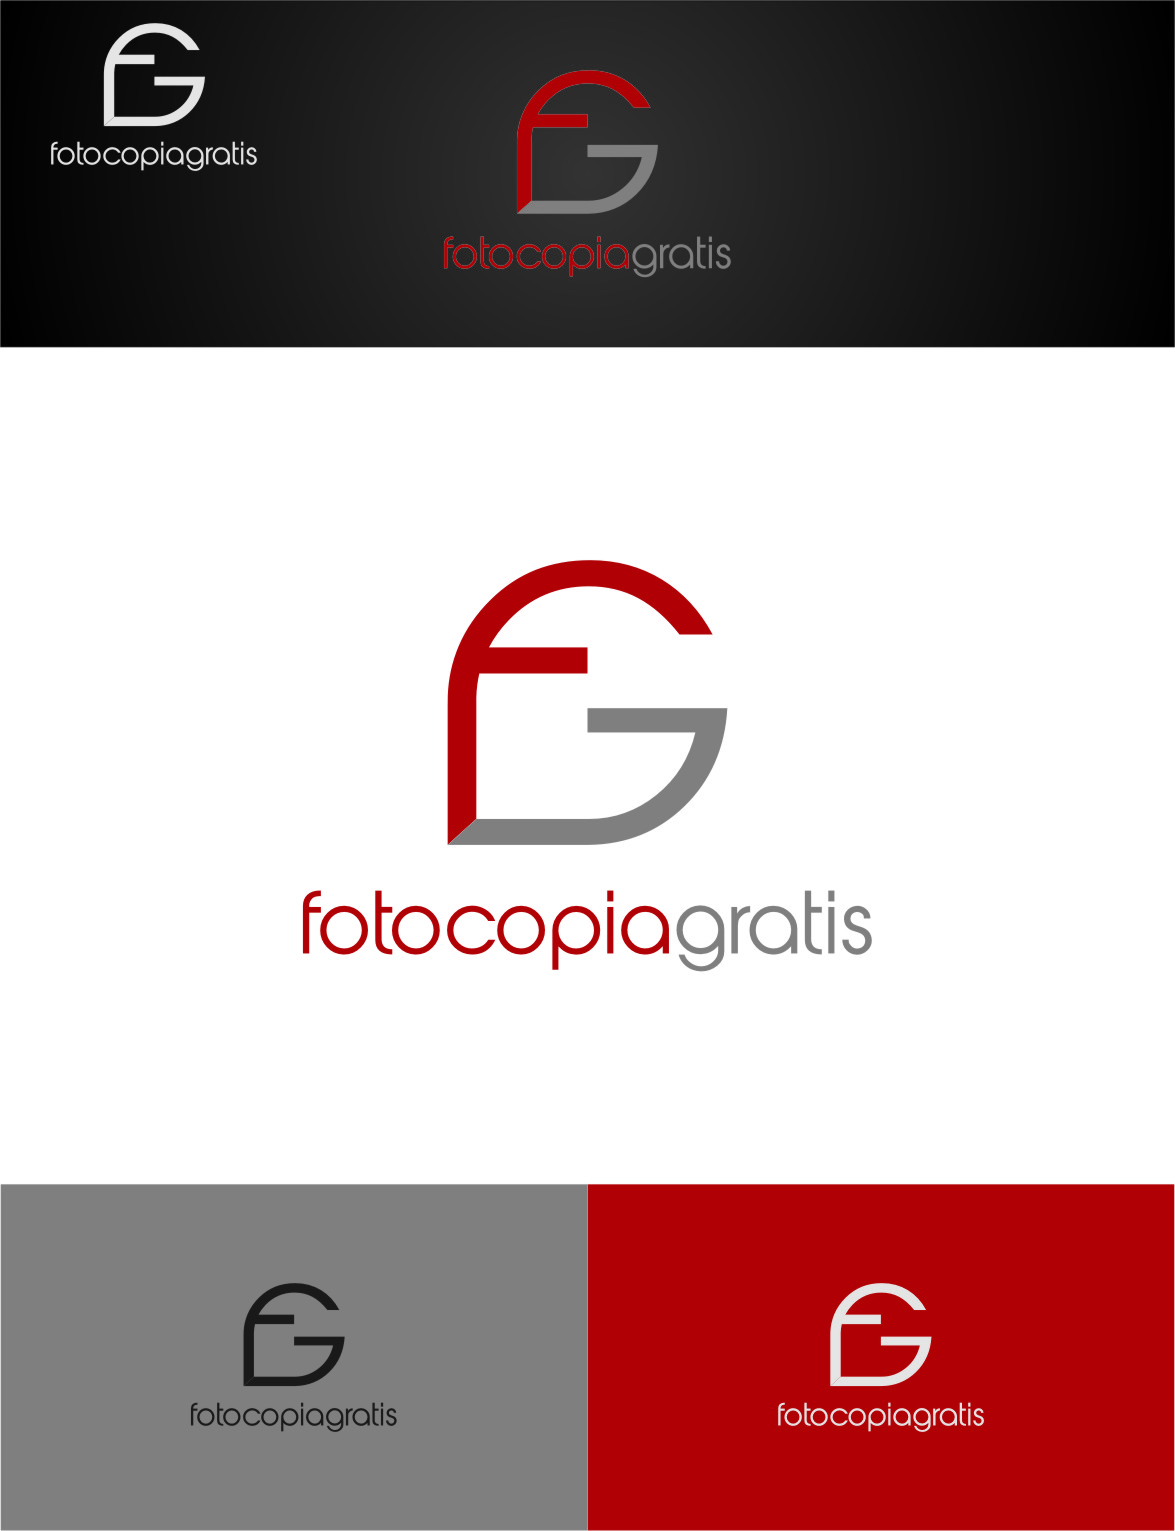 Logo Design by Ngepet_art - Entry No. 126 in the Logo Design Contest Inspiring Logo Design for Fotocopiagratis.